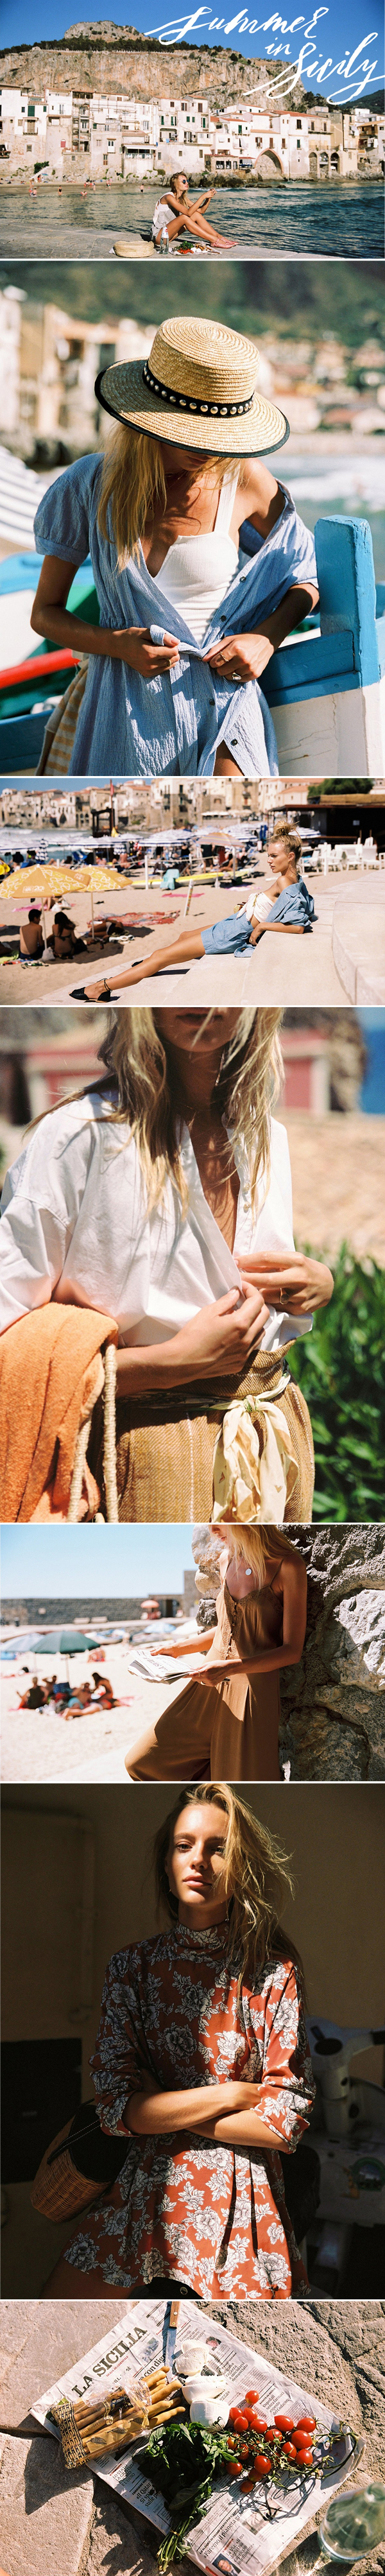 Verão na Sicília | Summer in Sicily - Free People editorial